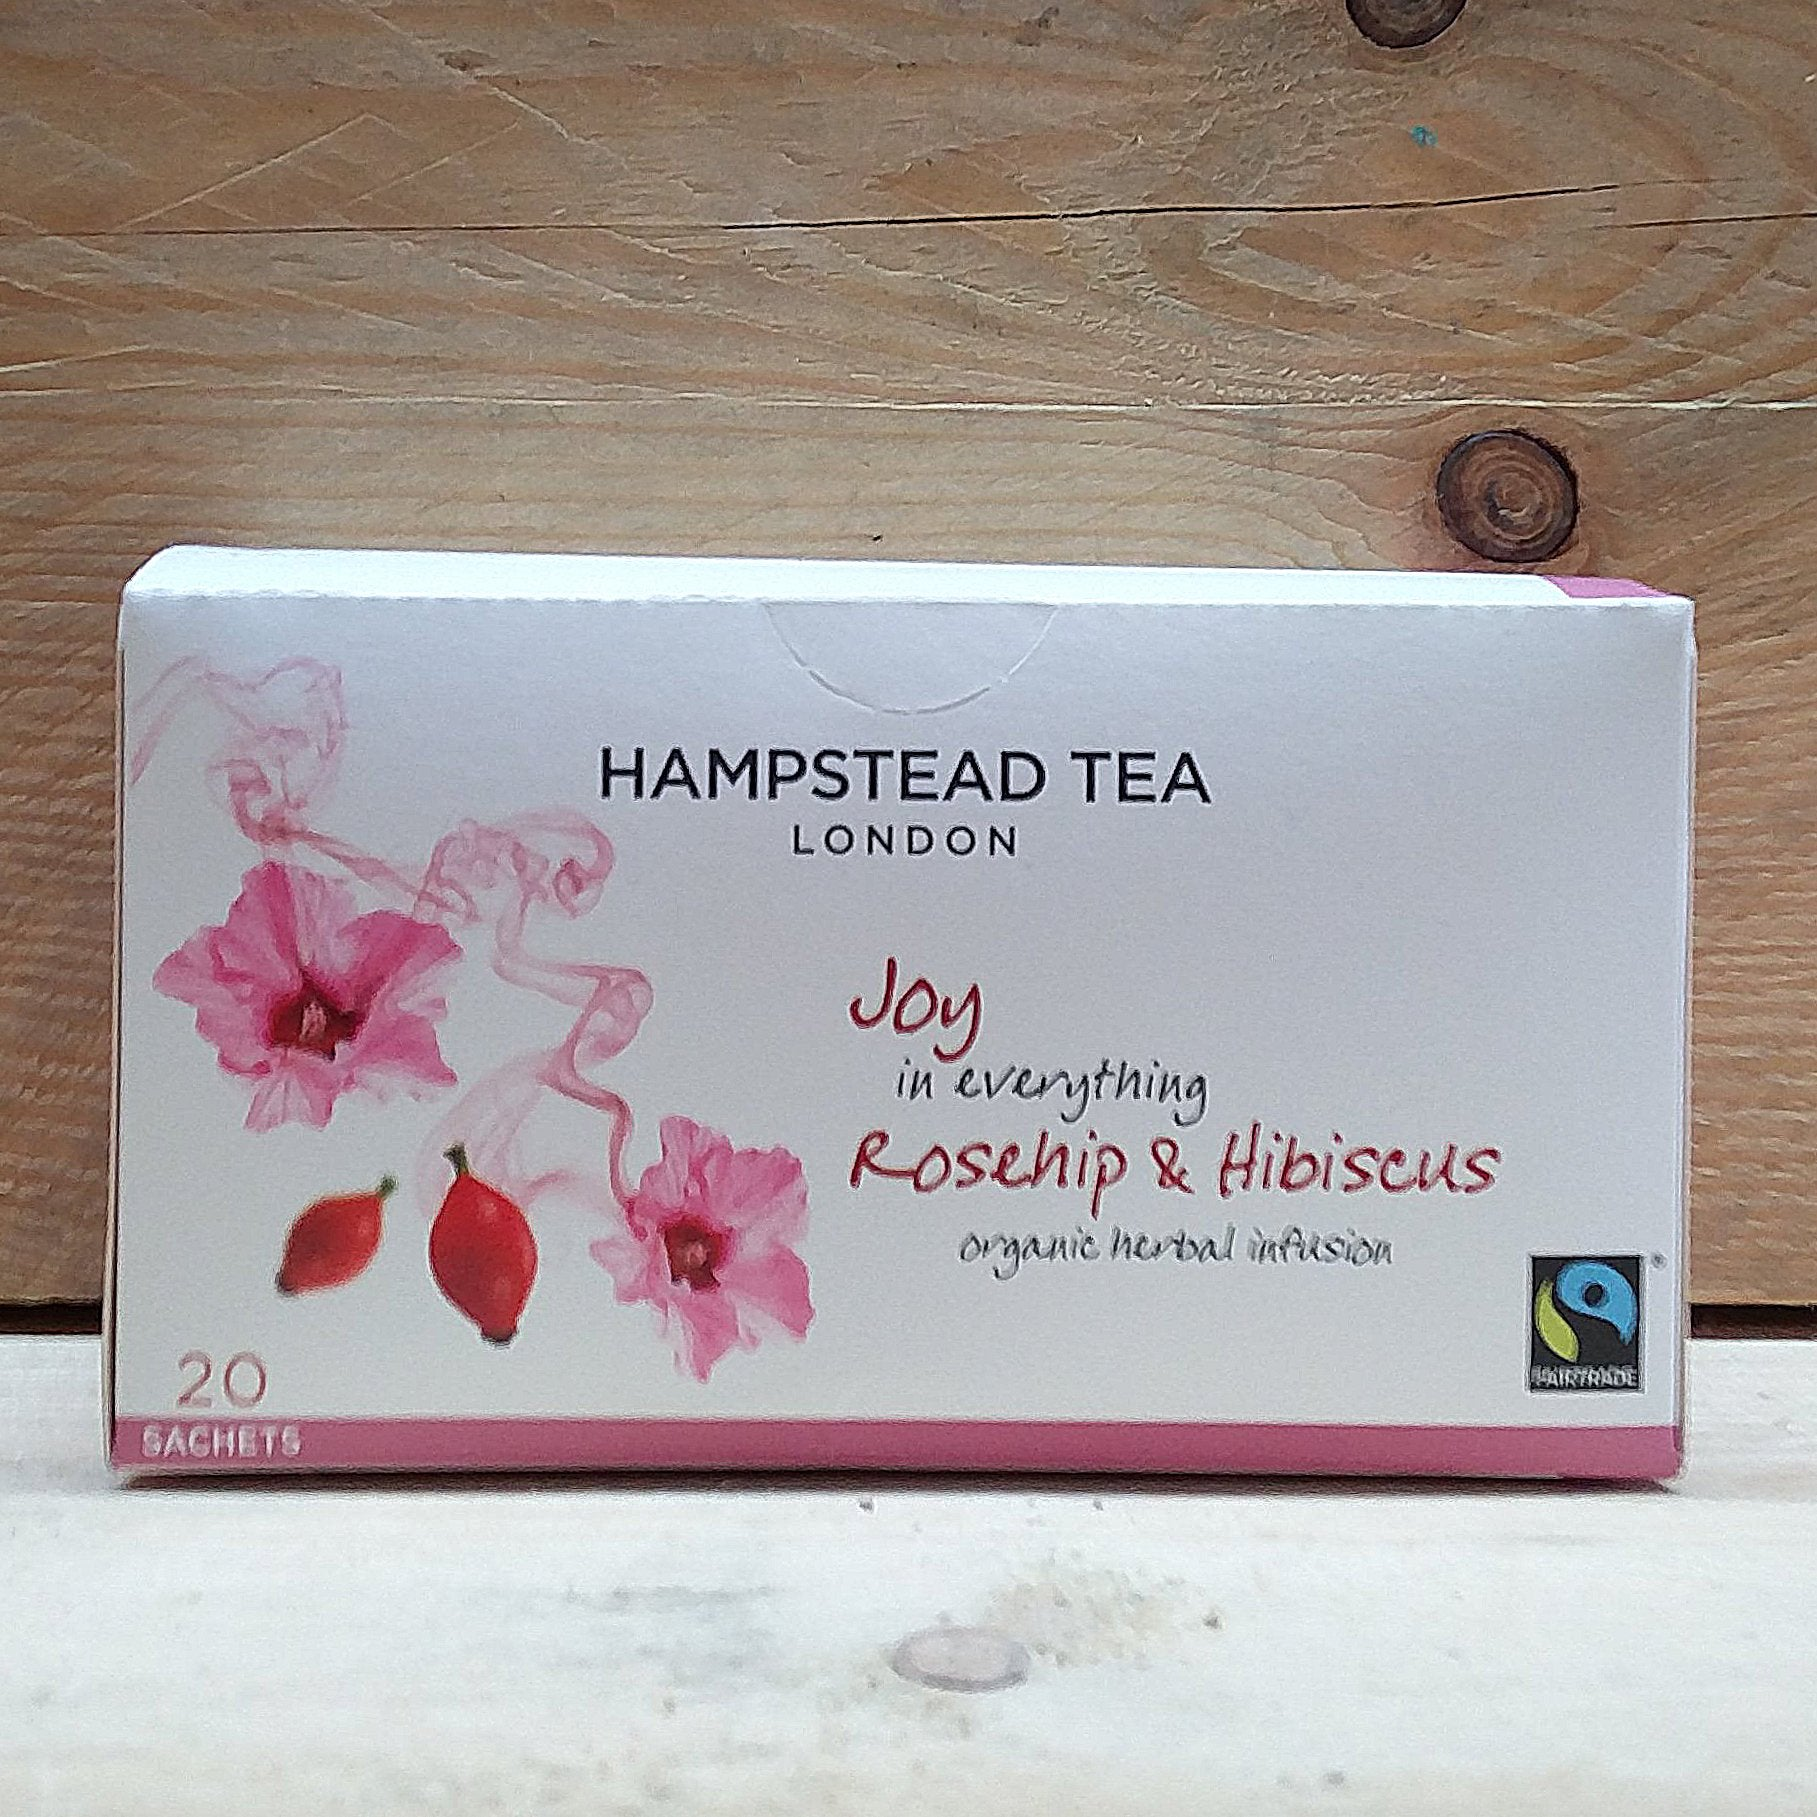 Hampstead Rosehip & Hibiscus Tea